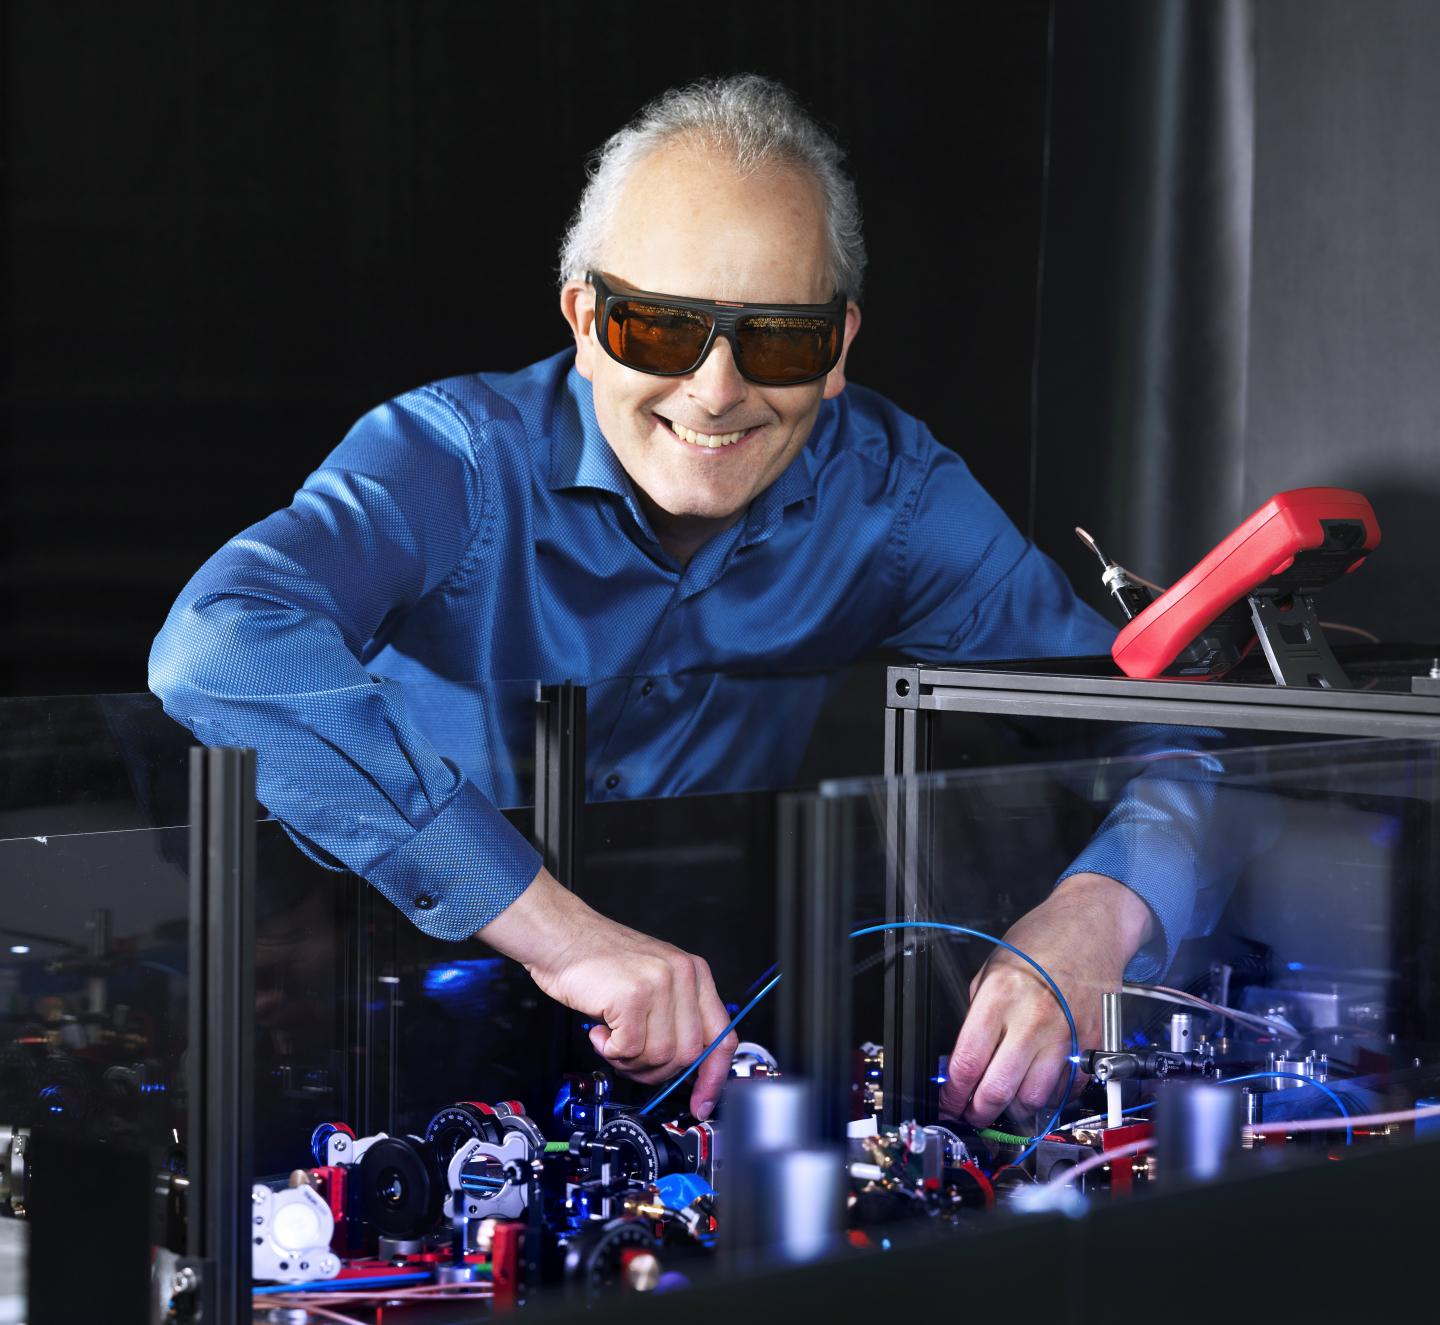 Prof. Dr. Piet Schmidt at work on the laser table.